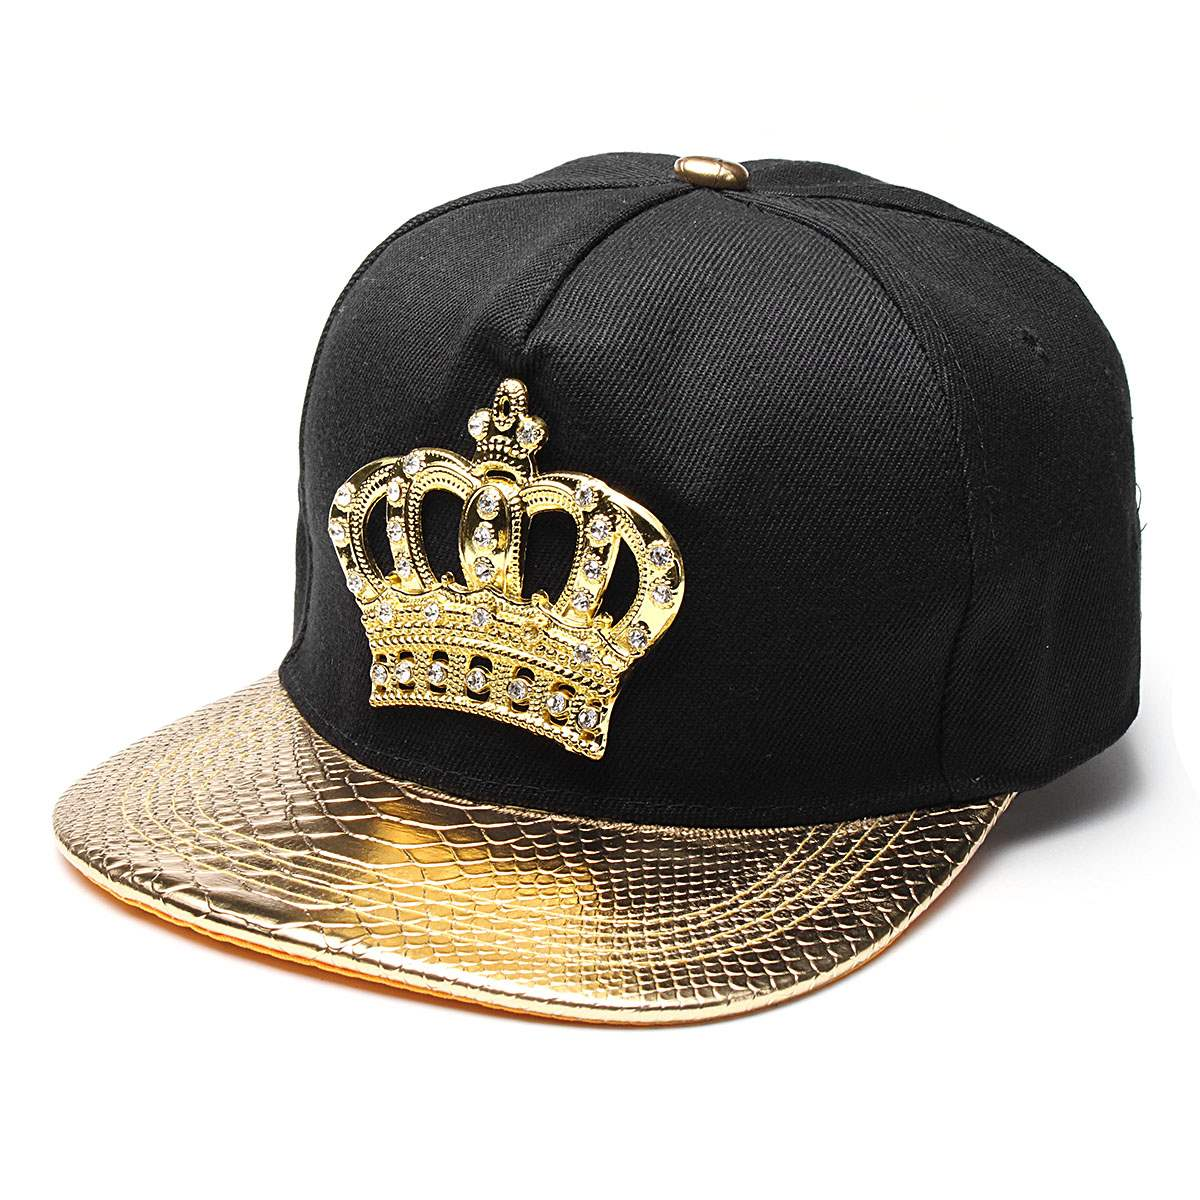 Men Women's Snapback Hat KING Crown Baseball Cap Adjustable Hip Hop Dad Hats Gold/Silver/Black Peaked Rhinestone Crystal Sun Cap